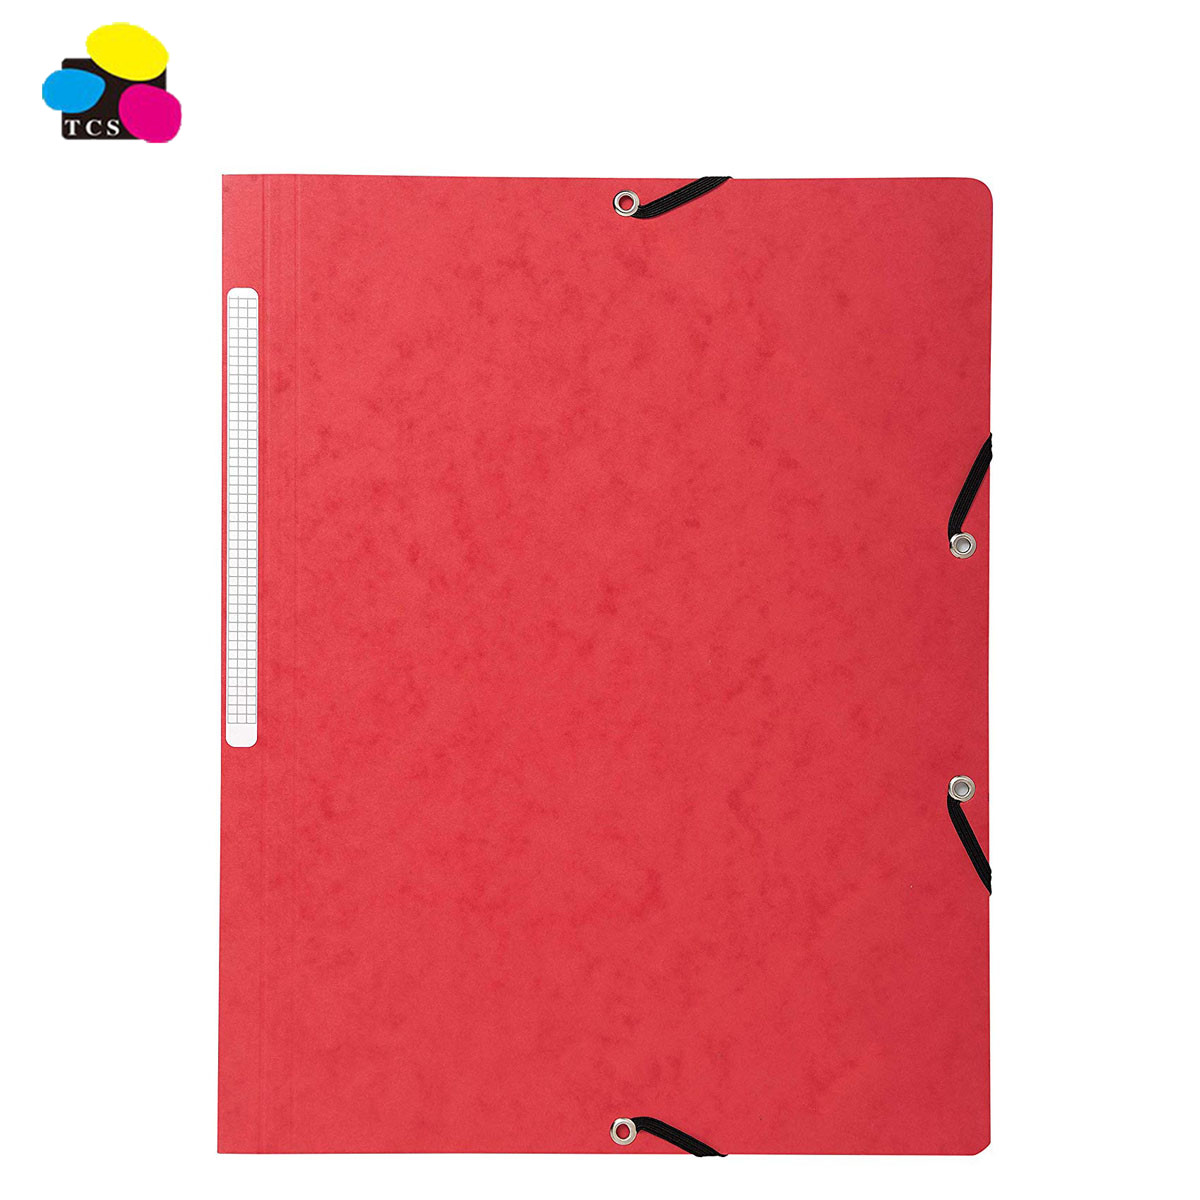 2020 Custom Colorful A4 Elastic Bands 3-Flap Recycled Folder With 25Pcs Per Box For Office and School Supplies